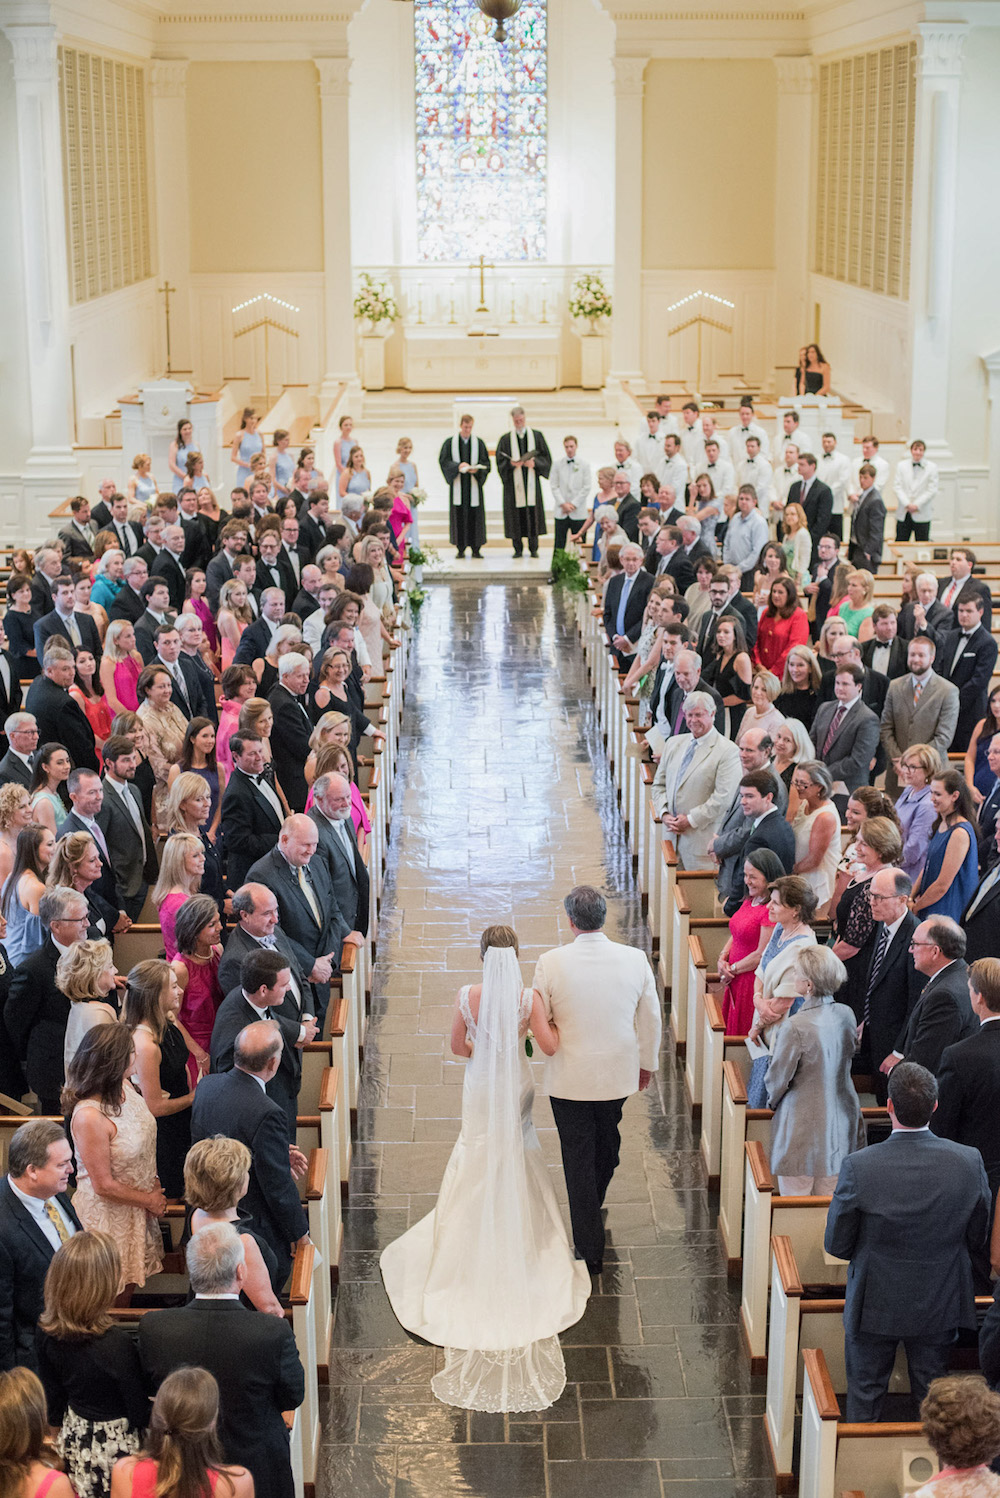 A Stately Church Ceremony